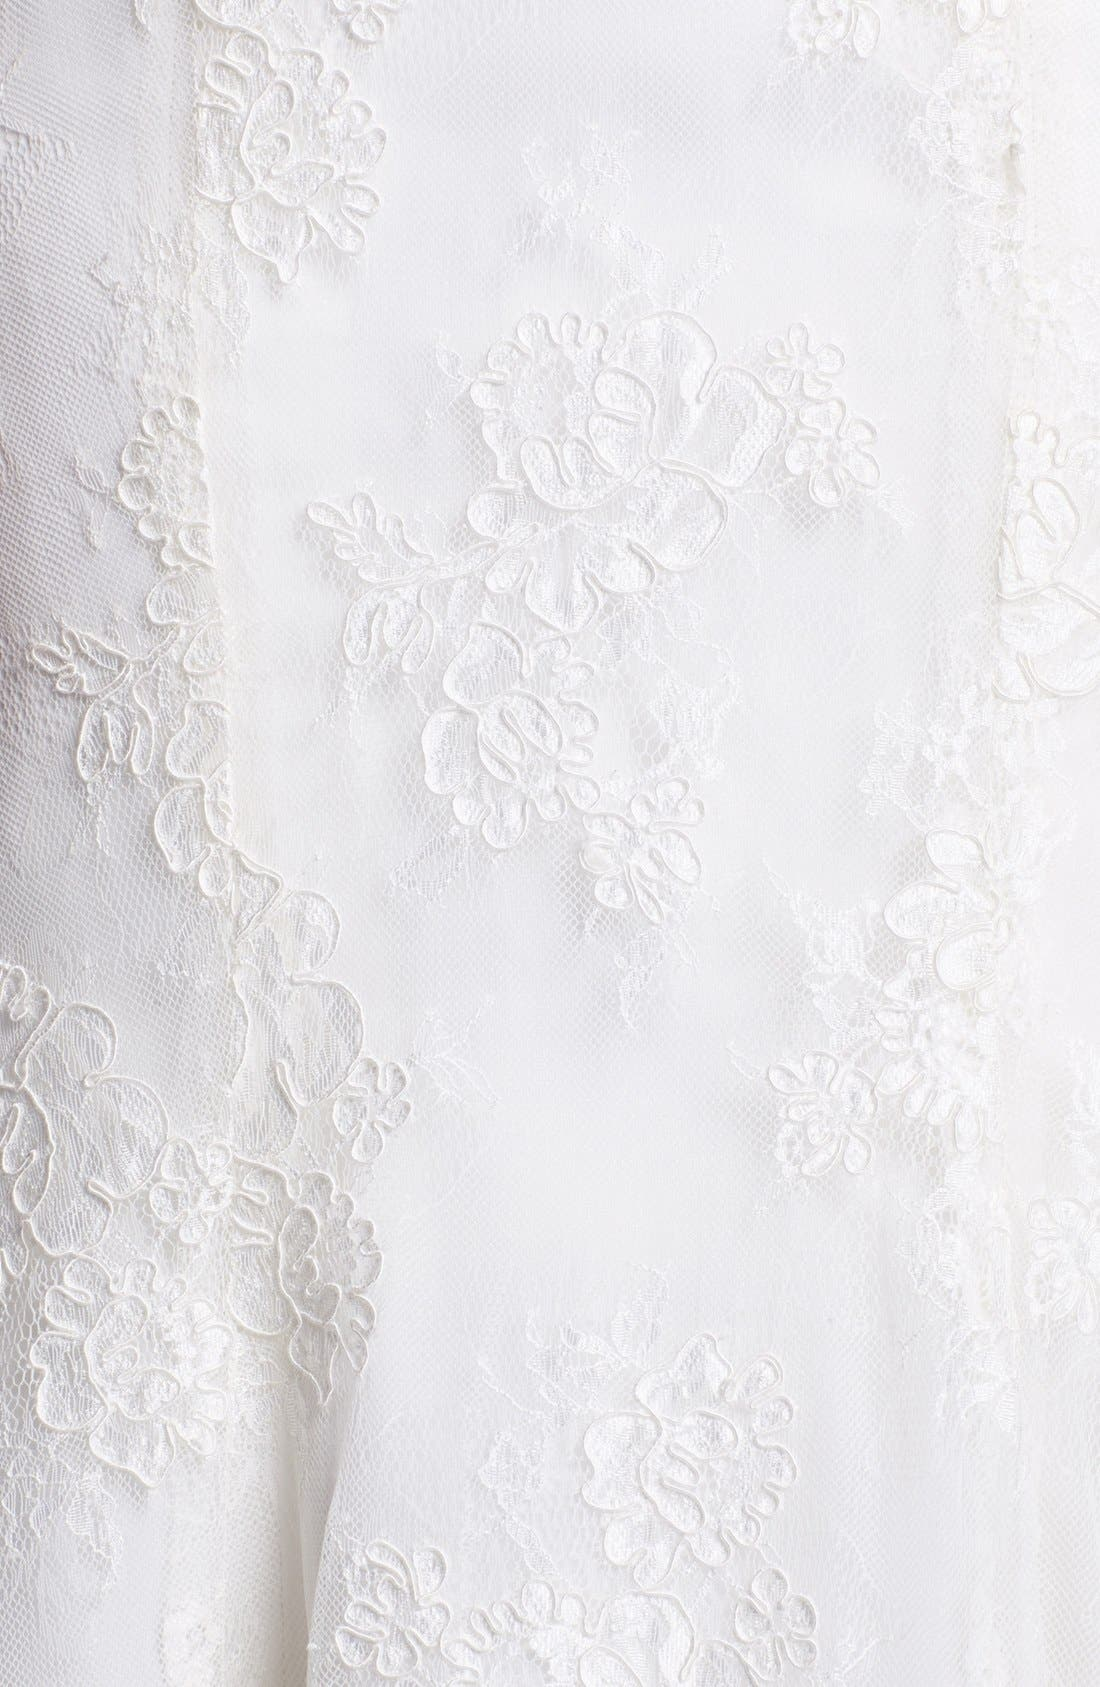 Embroidered Lace Trumpet Dress,                             Alternate thumbnail 5, color,                             900